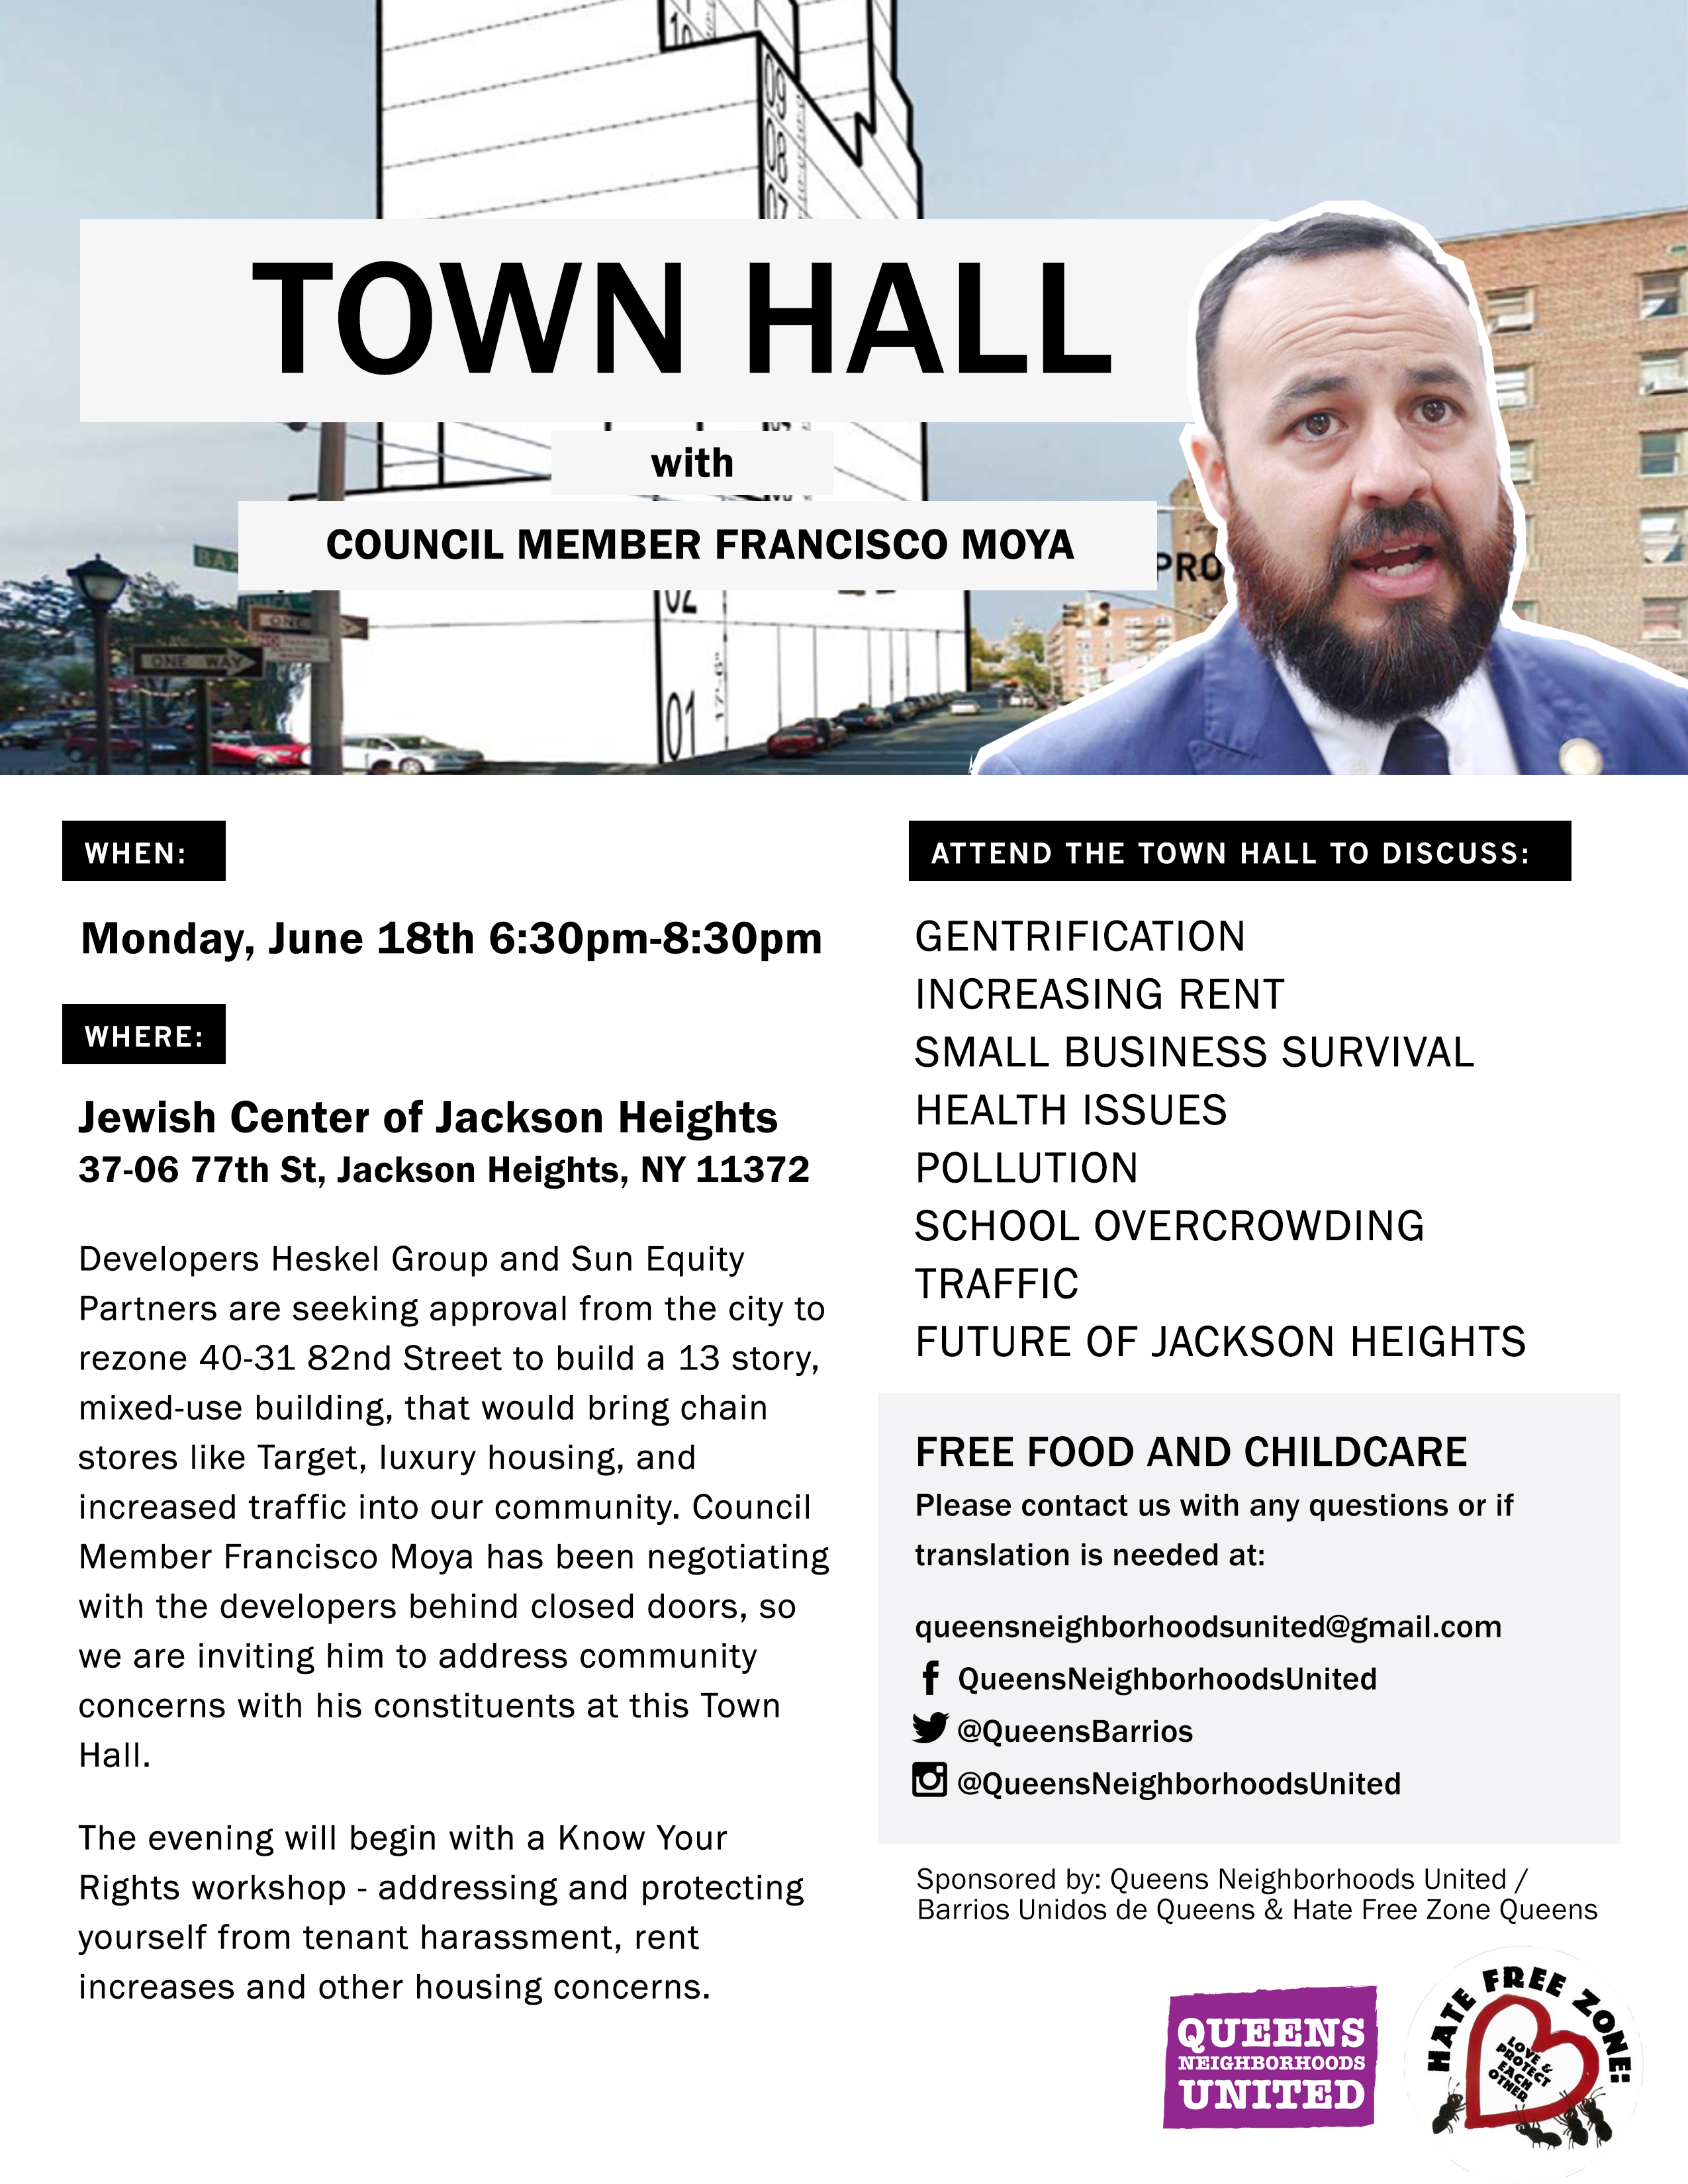 Flyer for QNU townhall